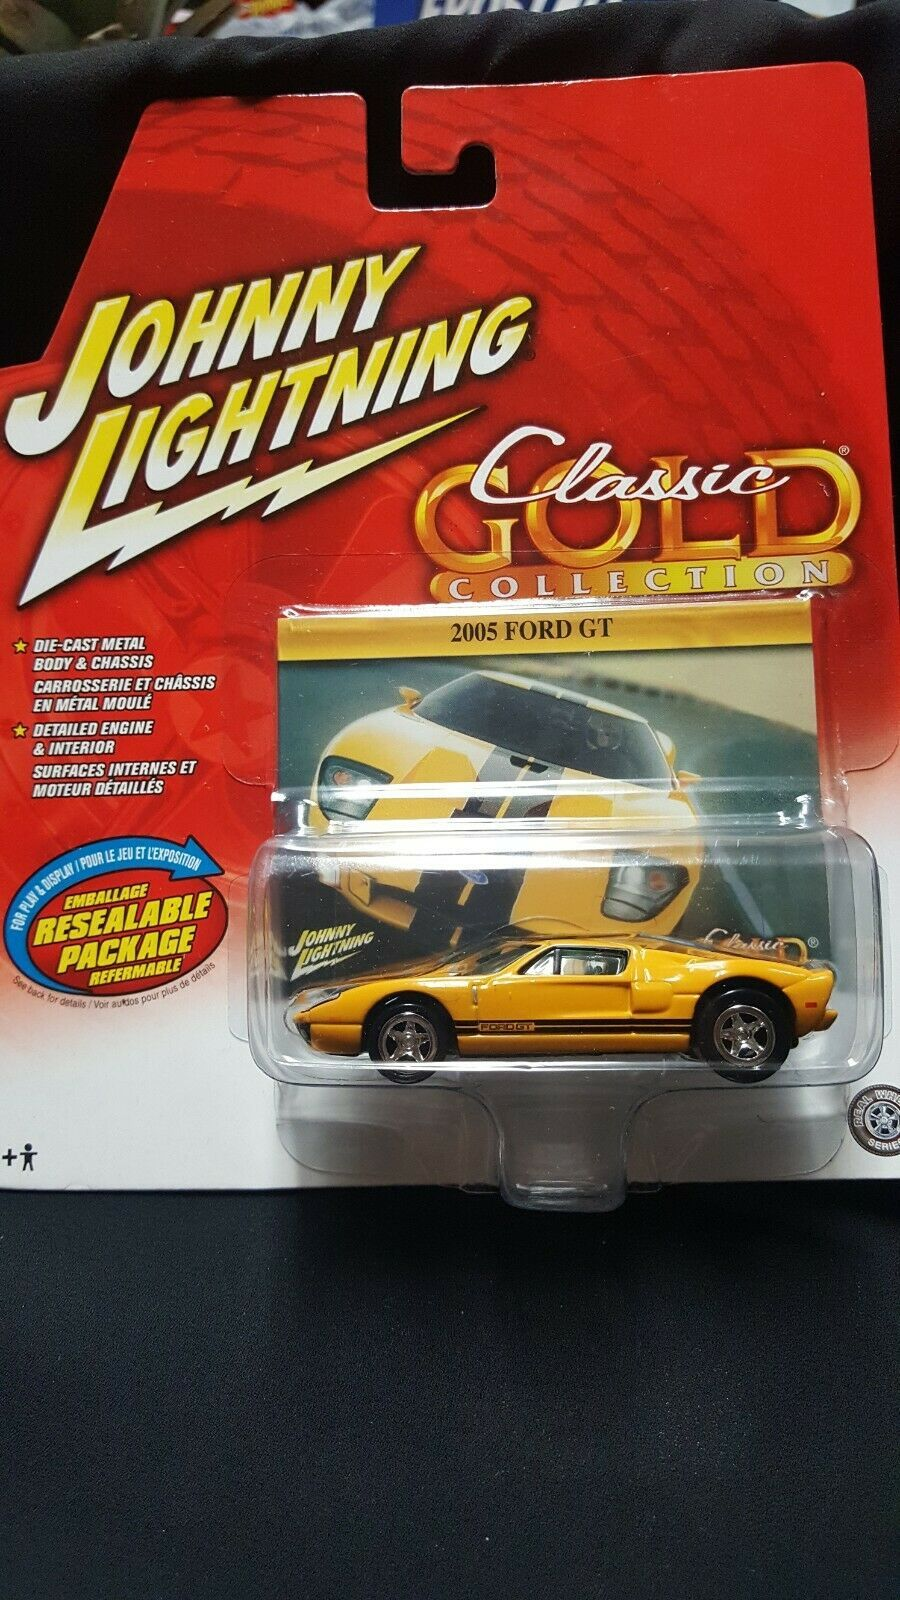 Johnny Lightning Classic Gold Collection 2005 Ford Gt In 2020 Ford Gt Gold Collection